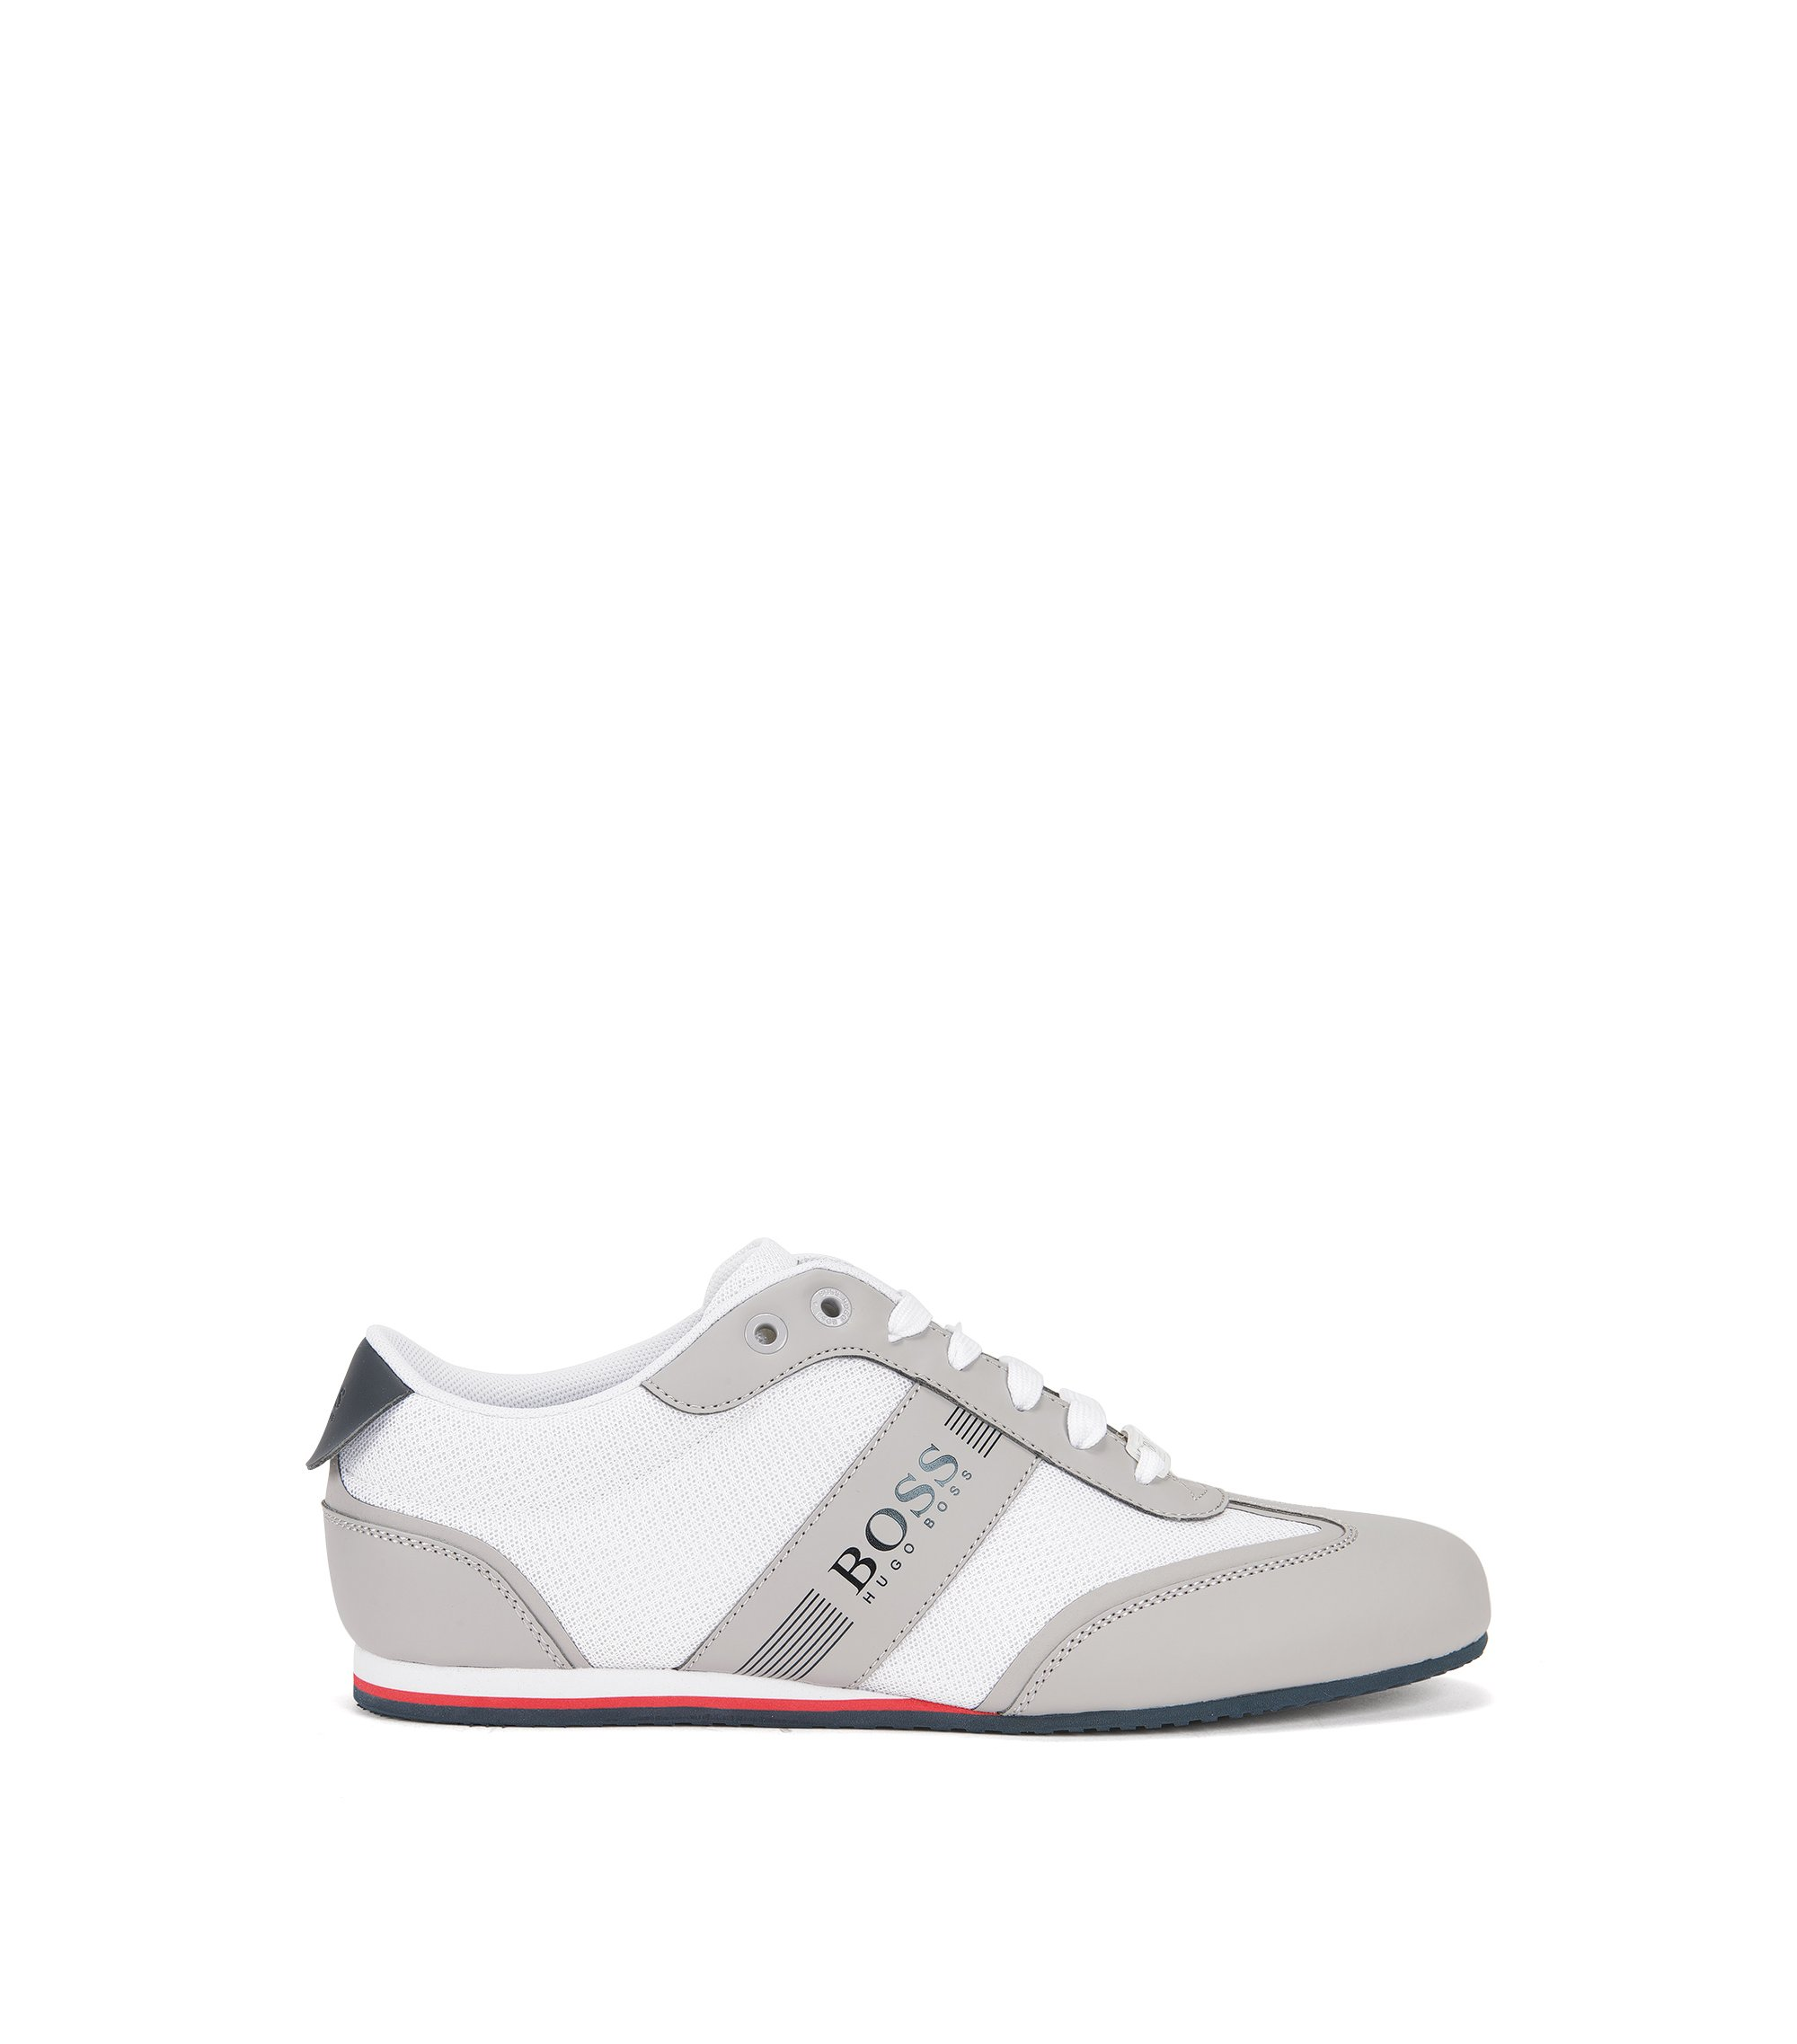 Mesh Sneaker | Lighter Lowp Mxme, White